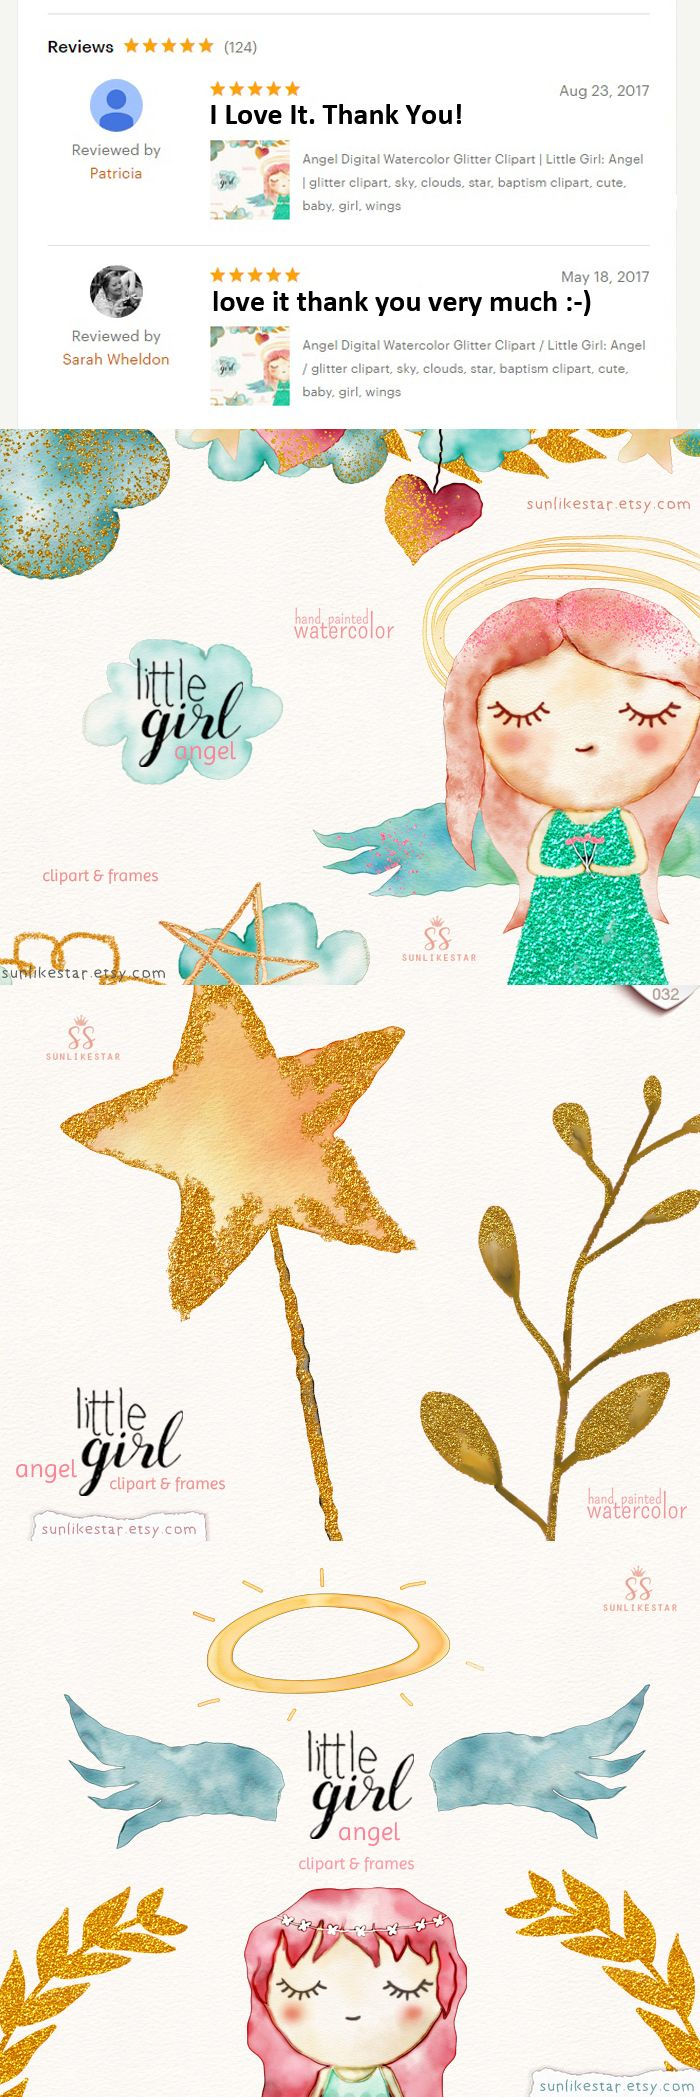 """Angel Digital Watercolor Glitter Clipart Little Girl: Angel, glitter clipart, sky, clouds, star, baptism clipart, cute, baby, girl, wings Little Girl: Angel ♡ cute baby girl clipart set Digital Watercolor Glitter Clipart ♡ cute watercolor girl clipart glitter watercolor  ∙∙∙∙∙∙∙∙∙∙∙∙∙∙∙∙∙∙∙∙∙∙∙∙∙∙∙∙∙∙∙∙∙∙∙∙∙∙∙∙∙∙∙∙∙∙∙∙ D E T A I L S ∙∙∙∙∙∙∙∙∙∙∙∙∙∙∙∙∙∙∙∙∙∙∙∙∙∙∙∙∙∙∙∙∙∙∙∙∙∙∙∙∙∙∙∙∙∙∙∙∙∙∙ • 30 transparent PNG -no background • 2 frames + 3 borders, JPEG & PNG • Size aprox: 10-3 """" • high resolution"""